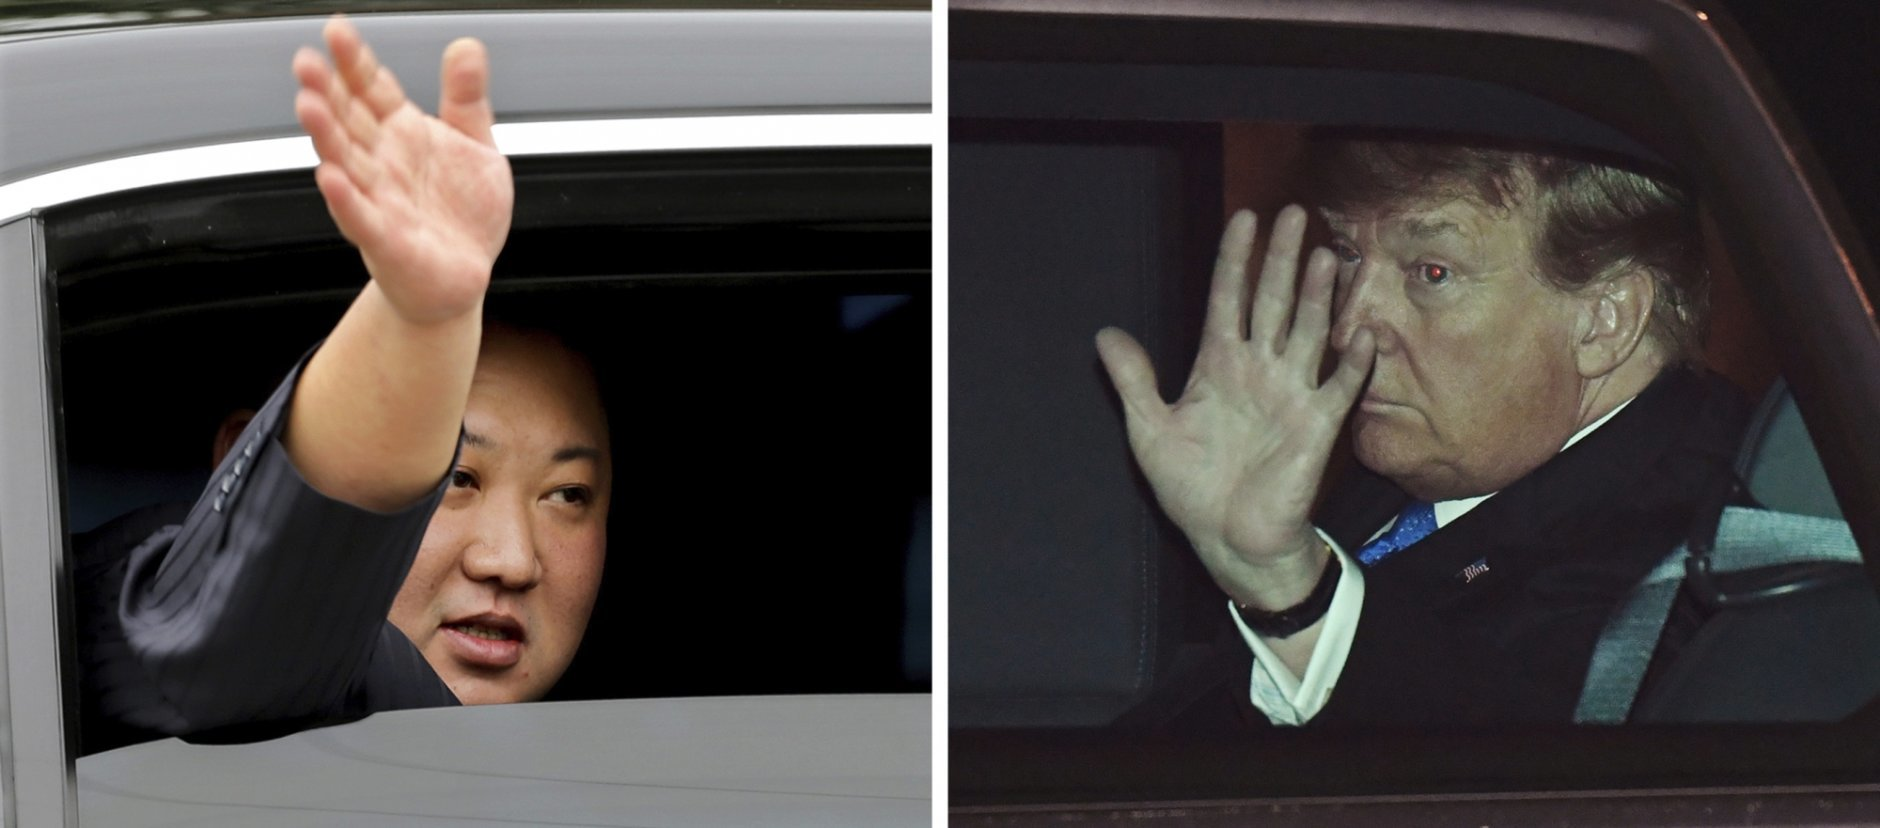 In this combination of images North Korean leader Kim Jong Un, left, waves from a car after arriving by train in Dong Dang, Vietnam, and U.S. President Donald Trump waves from his car after arriving on Air Force One at Noi Bai International Airport, in Hanoi, Vietnam, Tuesday, Feb. 26, 2019. Trump and Kim are to meet Wednesday in their second summit aimed at addressing perhaps the world's biggest security challenge: Kim's pursuit of a nuclear program that stands on the verge of viably threatening targets around the planet.  (AP Photos)